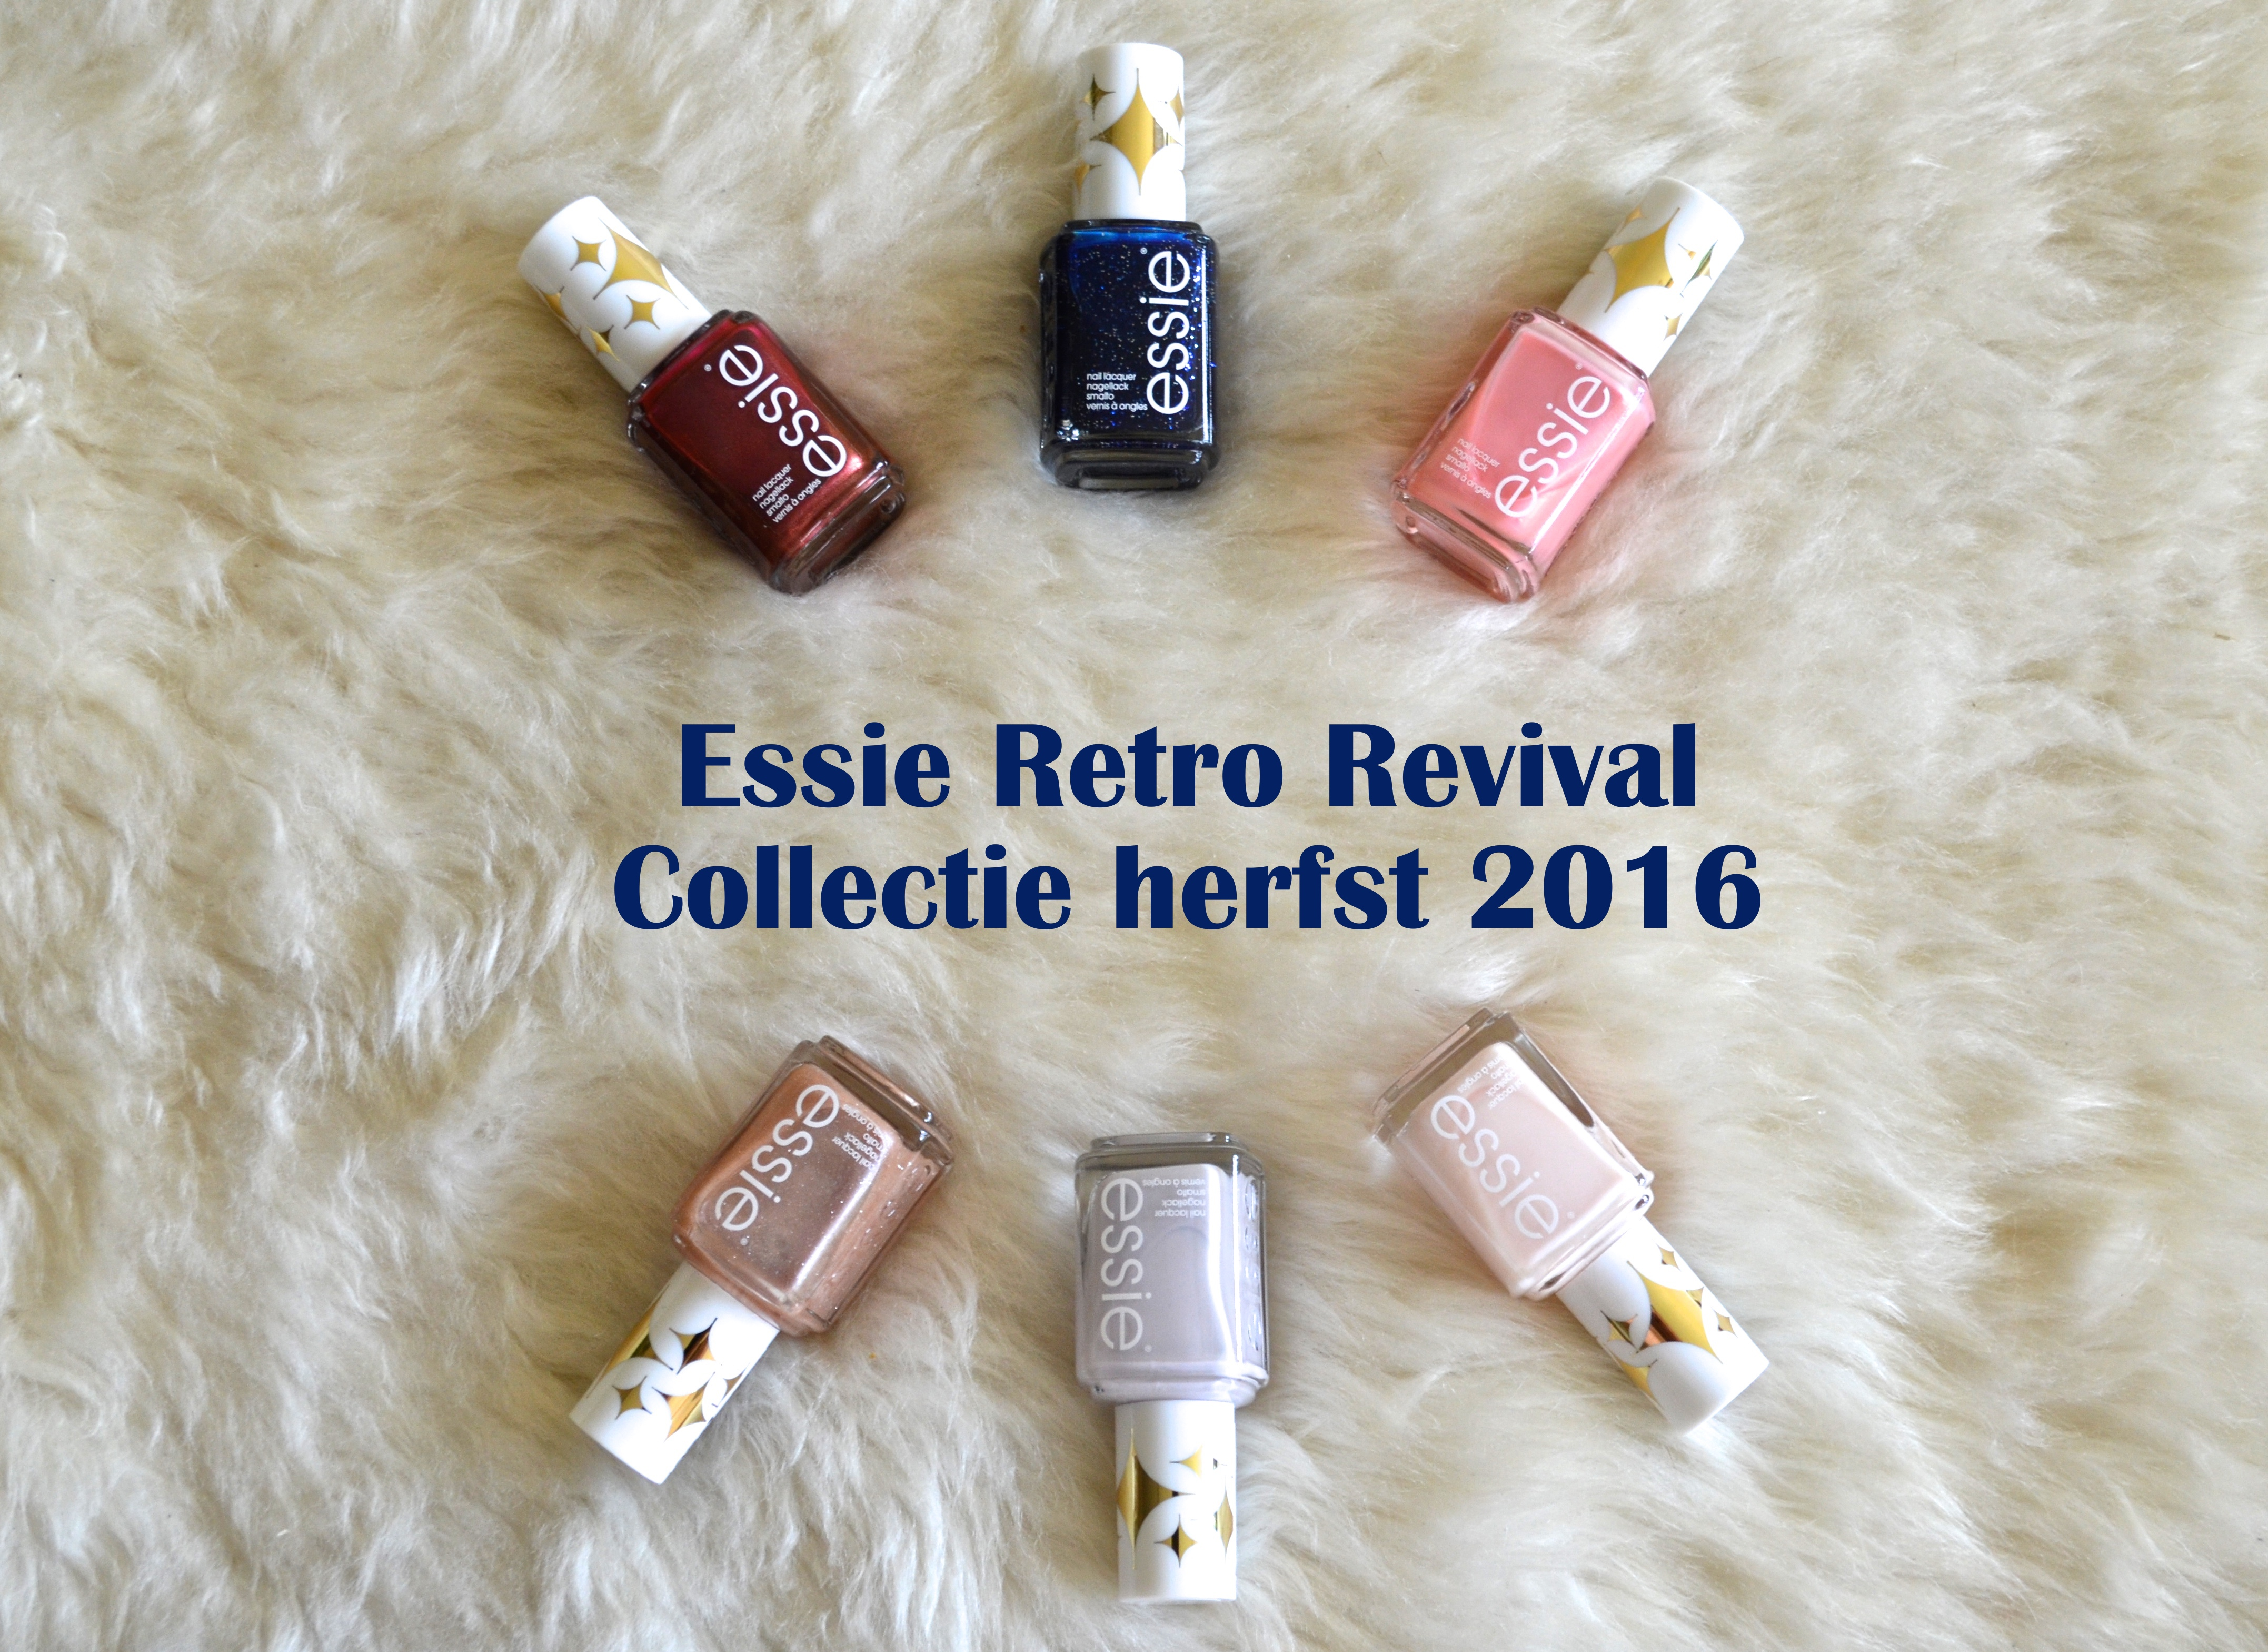 Essie retro revival collectie herfst 2016